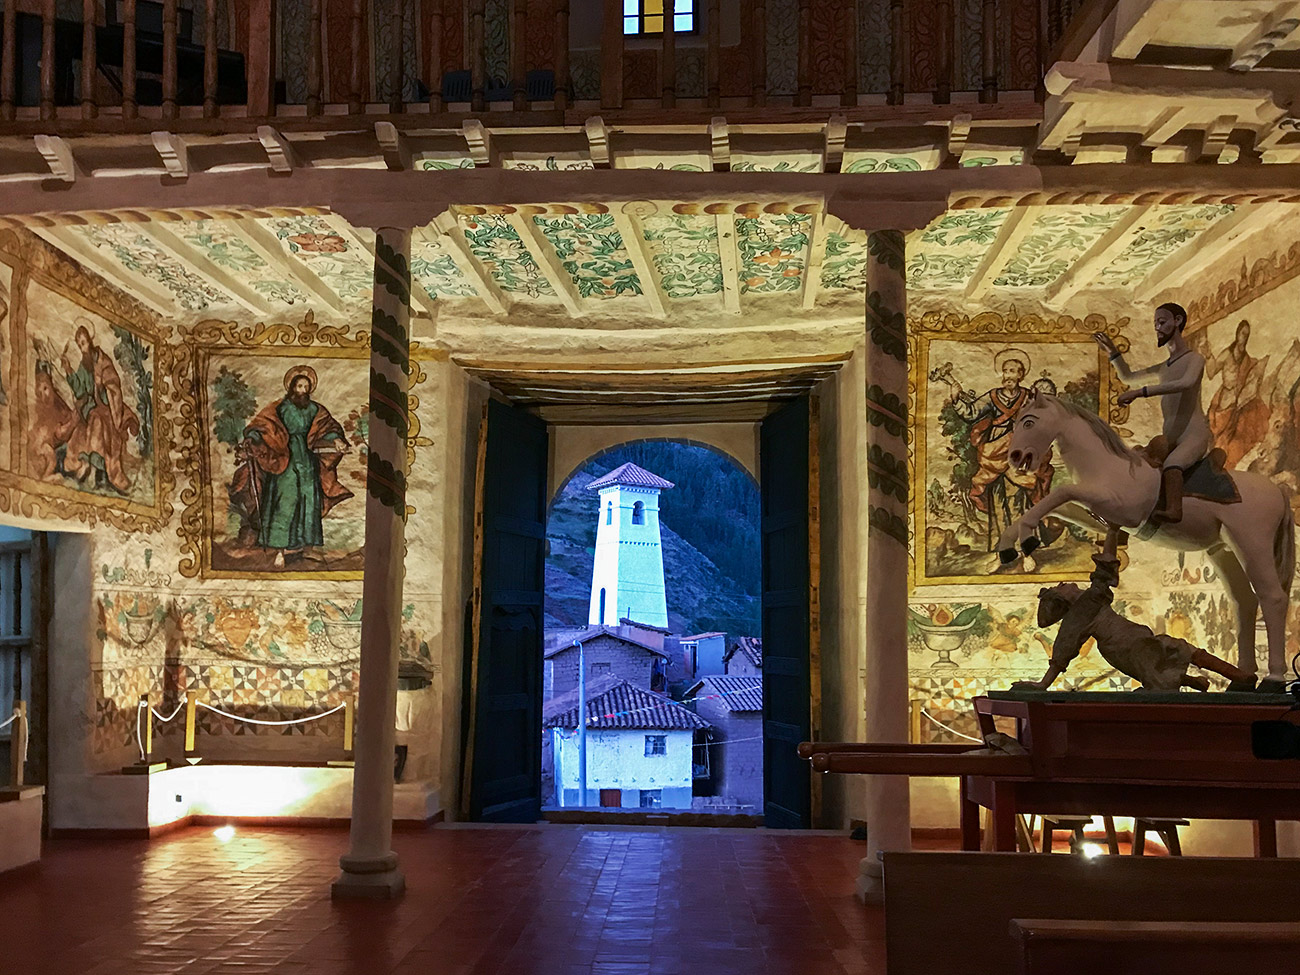 The interior of the church showing wall paintings and the bell tower outside at dusk.